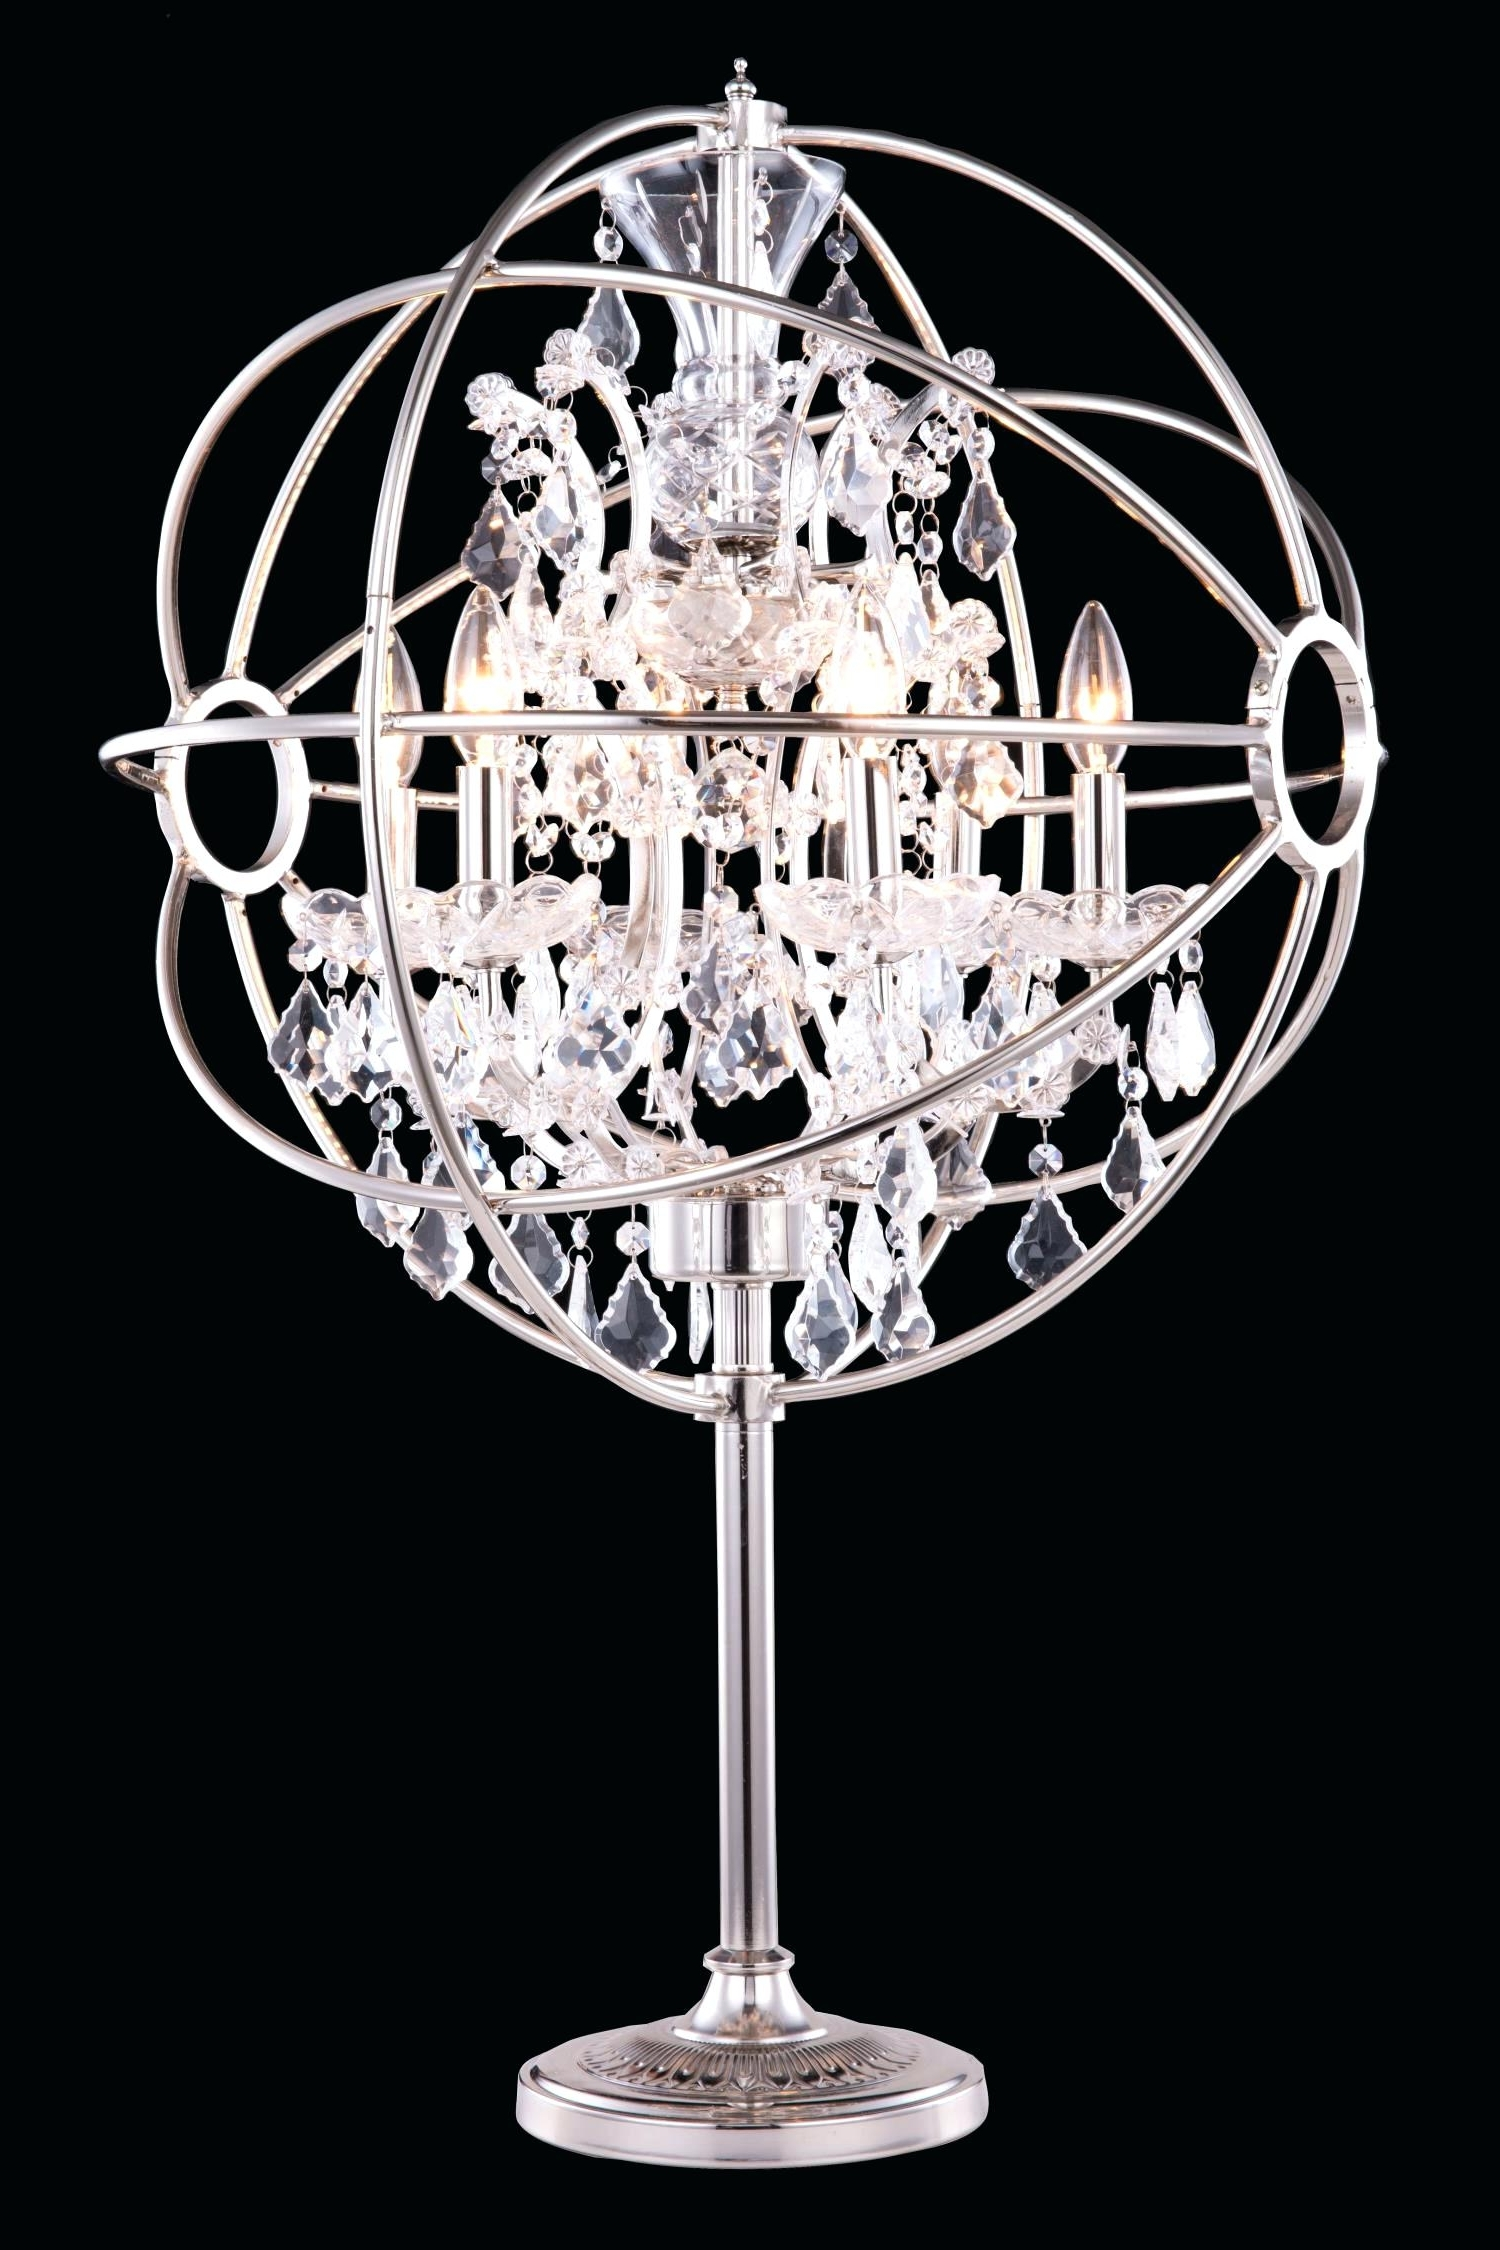 Faux Crystal Chandelier Table Lamps Intended For Preferred Black Crystal Chandelier Table Lamps – Homeinteriorideas (View 12 of 20)